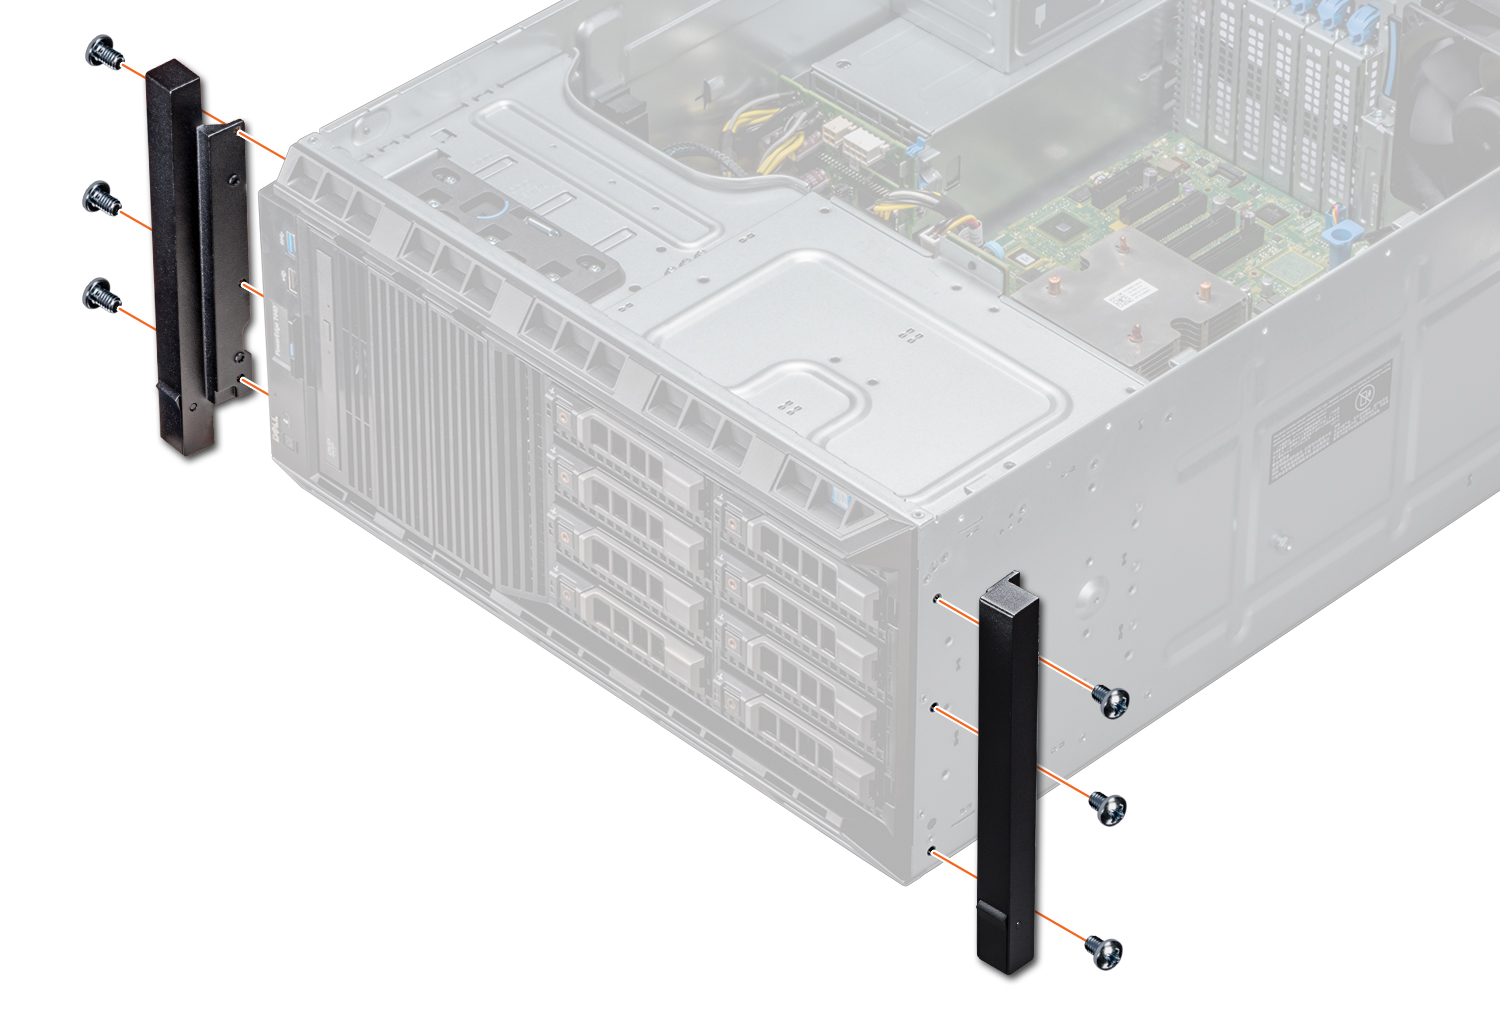 Dell EMC PowerEdge T440 Installation and Service Manual